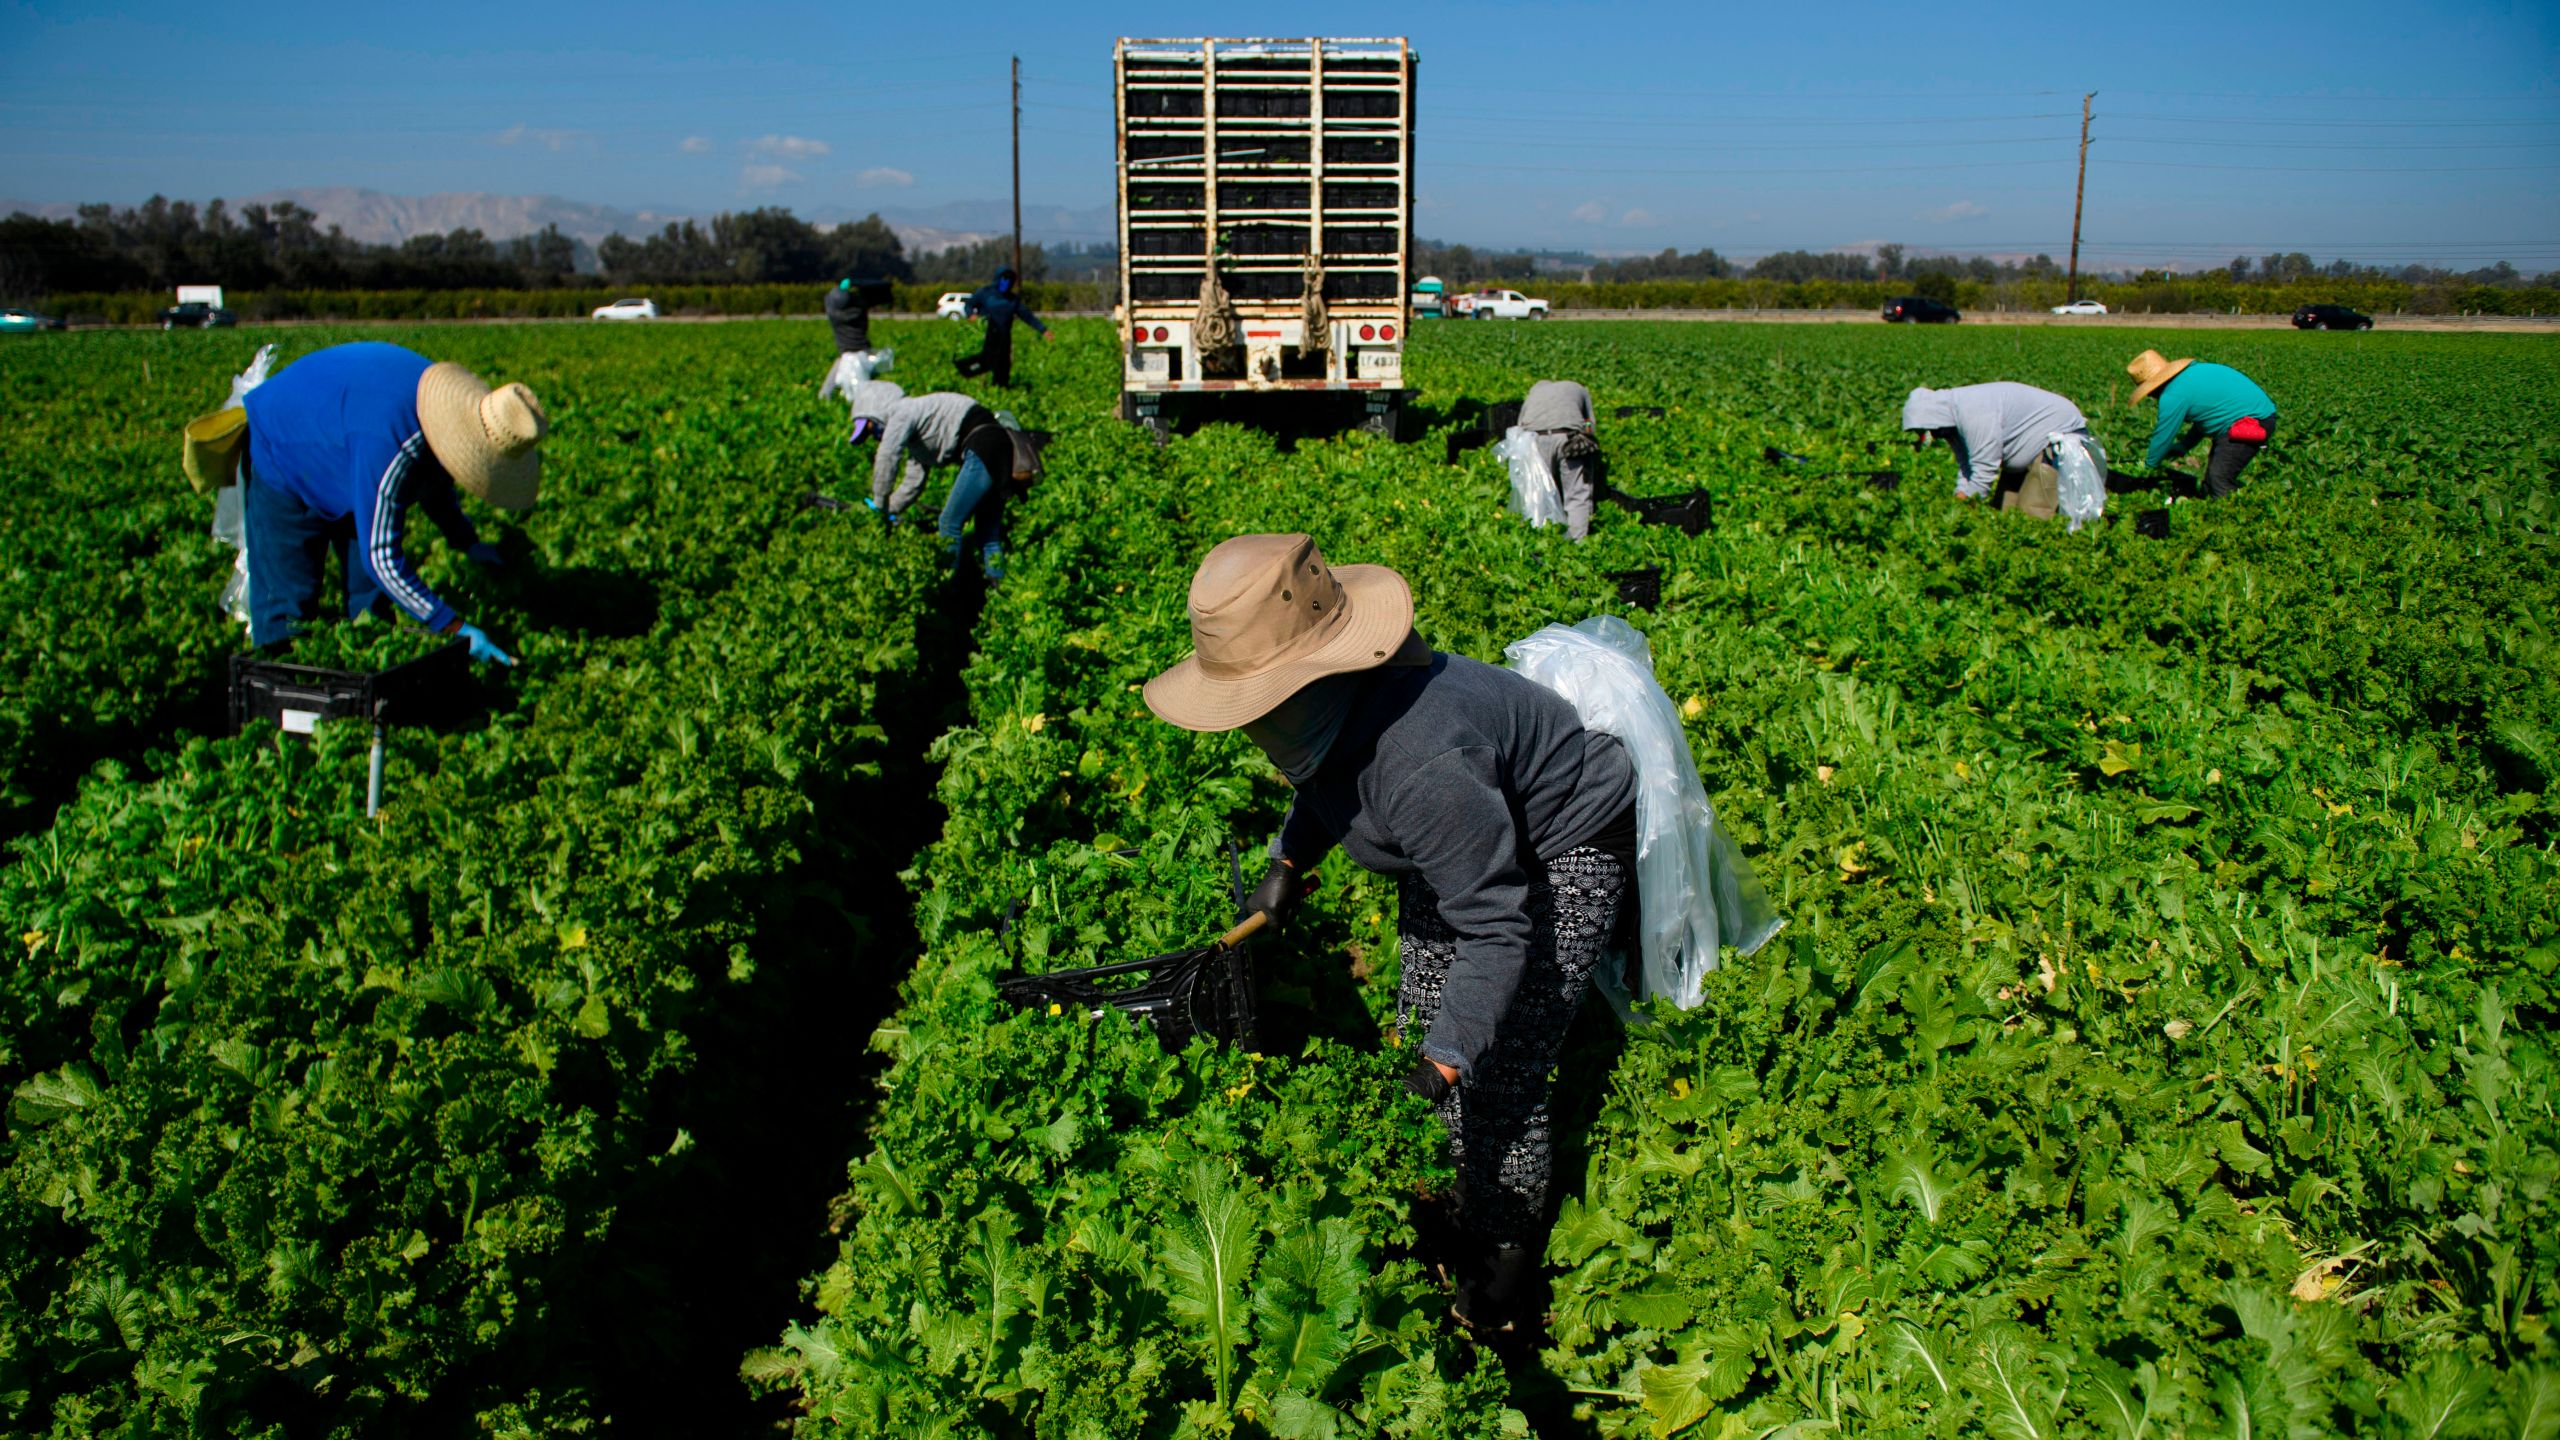 Farmworkers wear face masks while harvesting curly mustard in a field on February 10, 2021 in Ventura County, California. (Patrick T. Fallon/AFP via Getty Images)